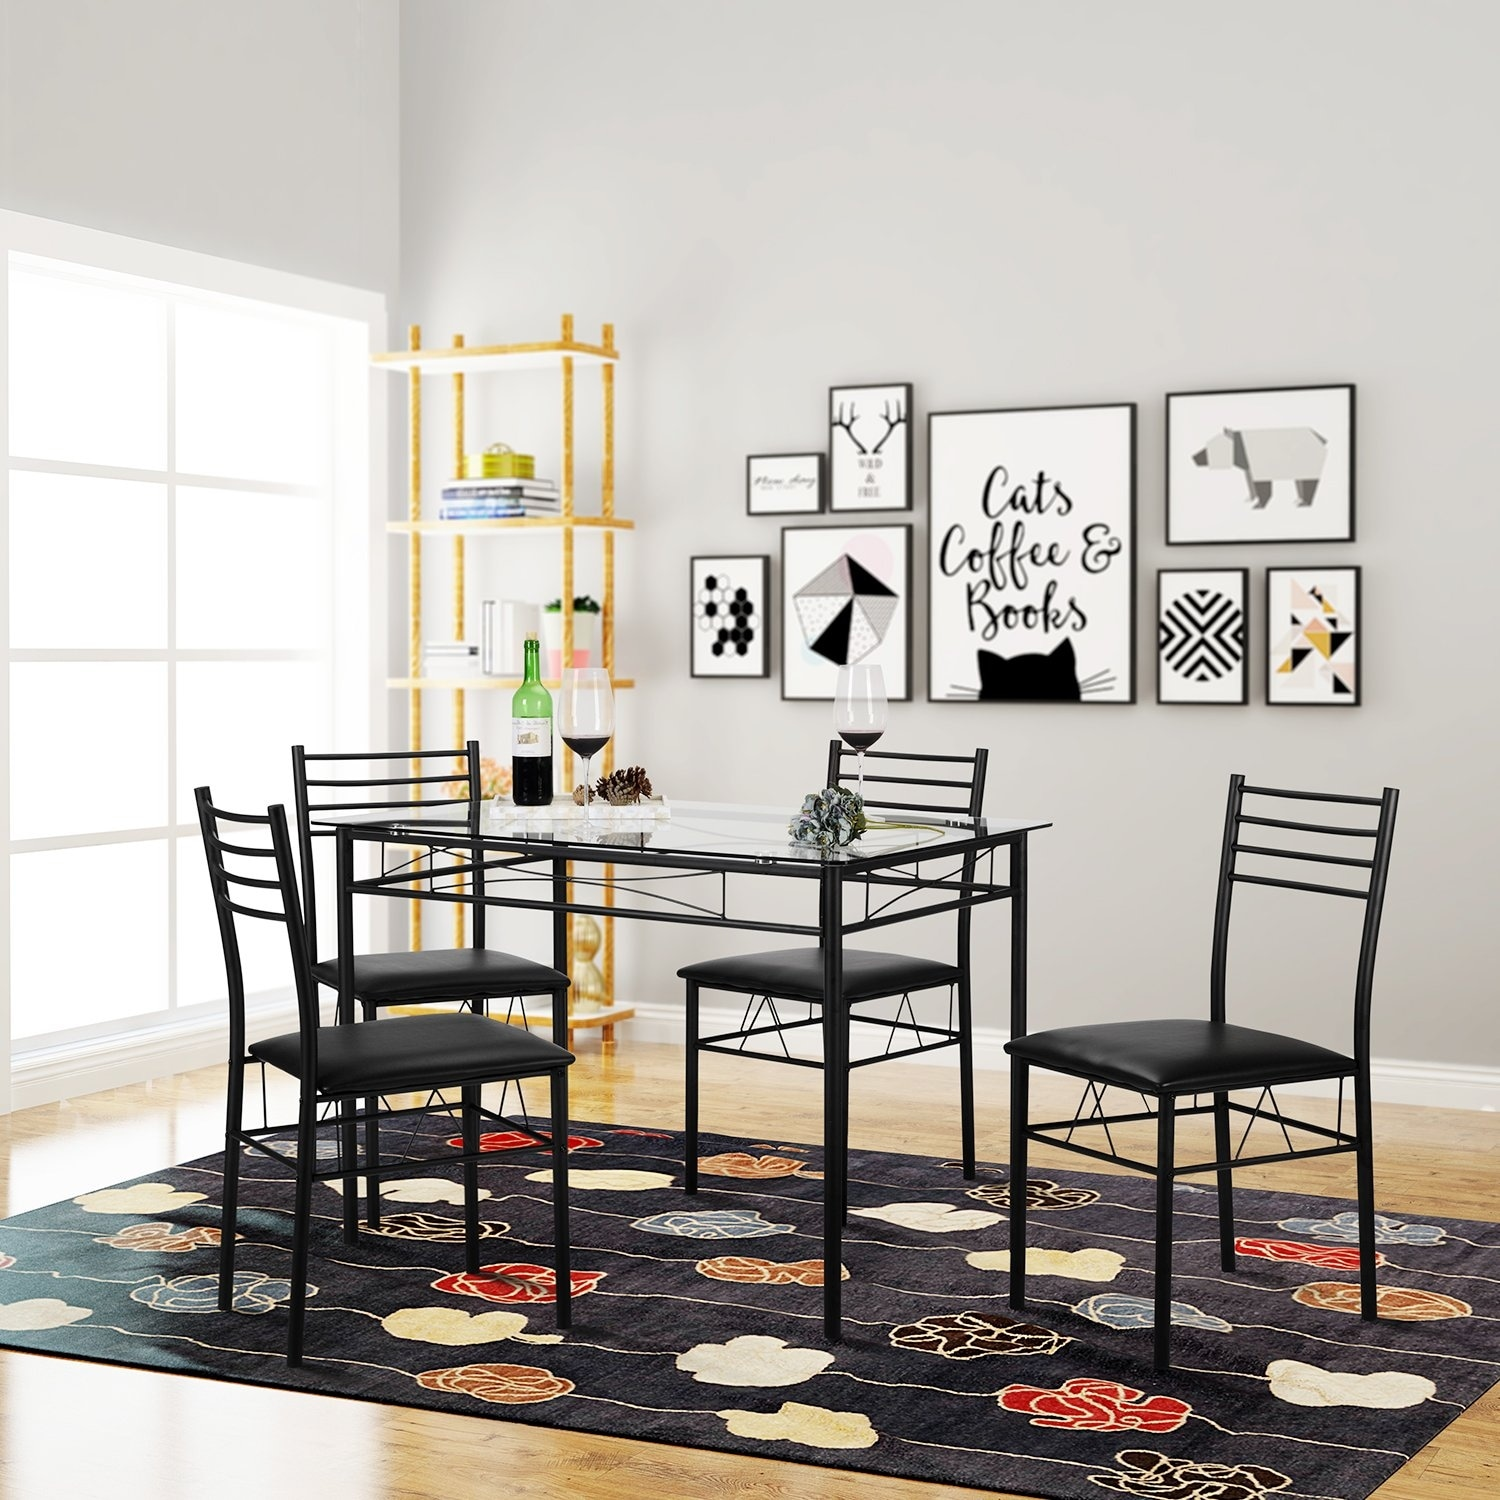 Remarkable Vecelo Glass Dining Table Sets With 4 Chairs Kitchen Table Sets Download Free Architecture Designs Viewormadebymaigaardcom